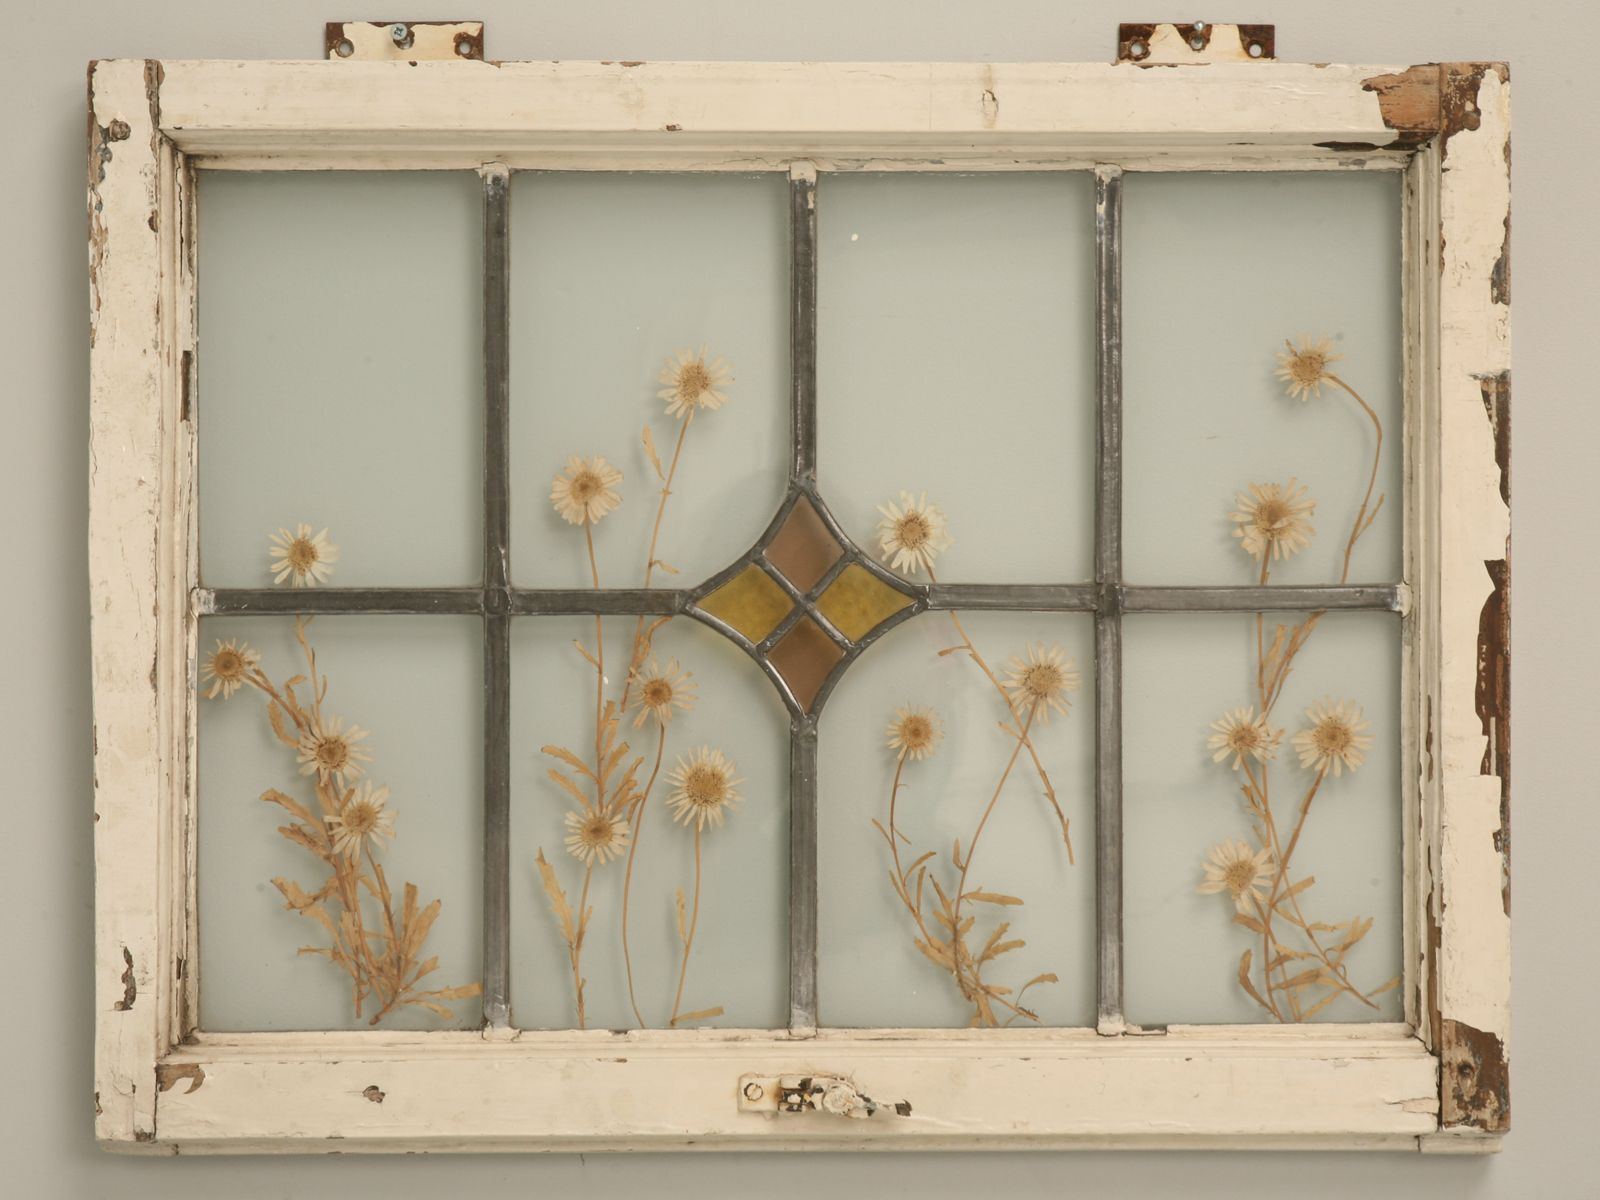 The last pin with the window wall hanging has sparked my imagination. Pinning for more inspiration. :)